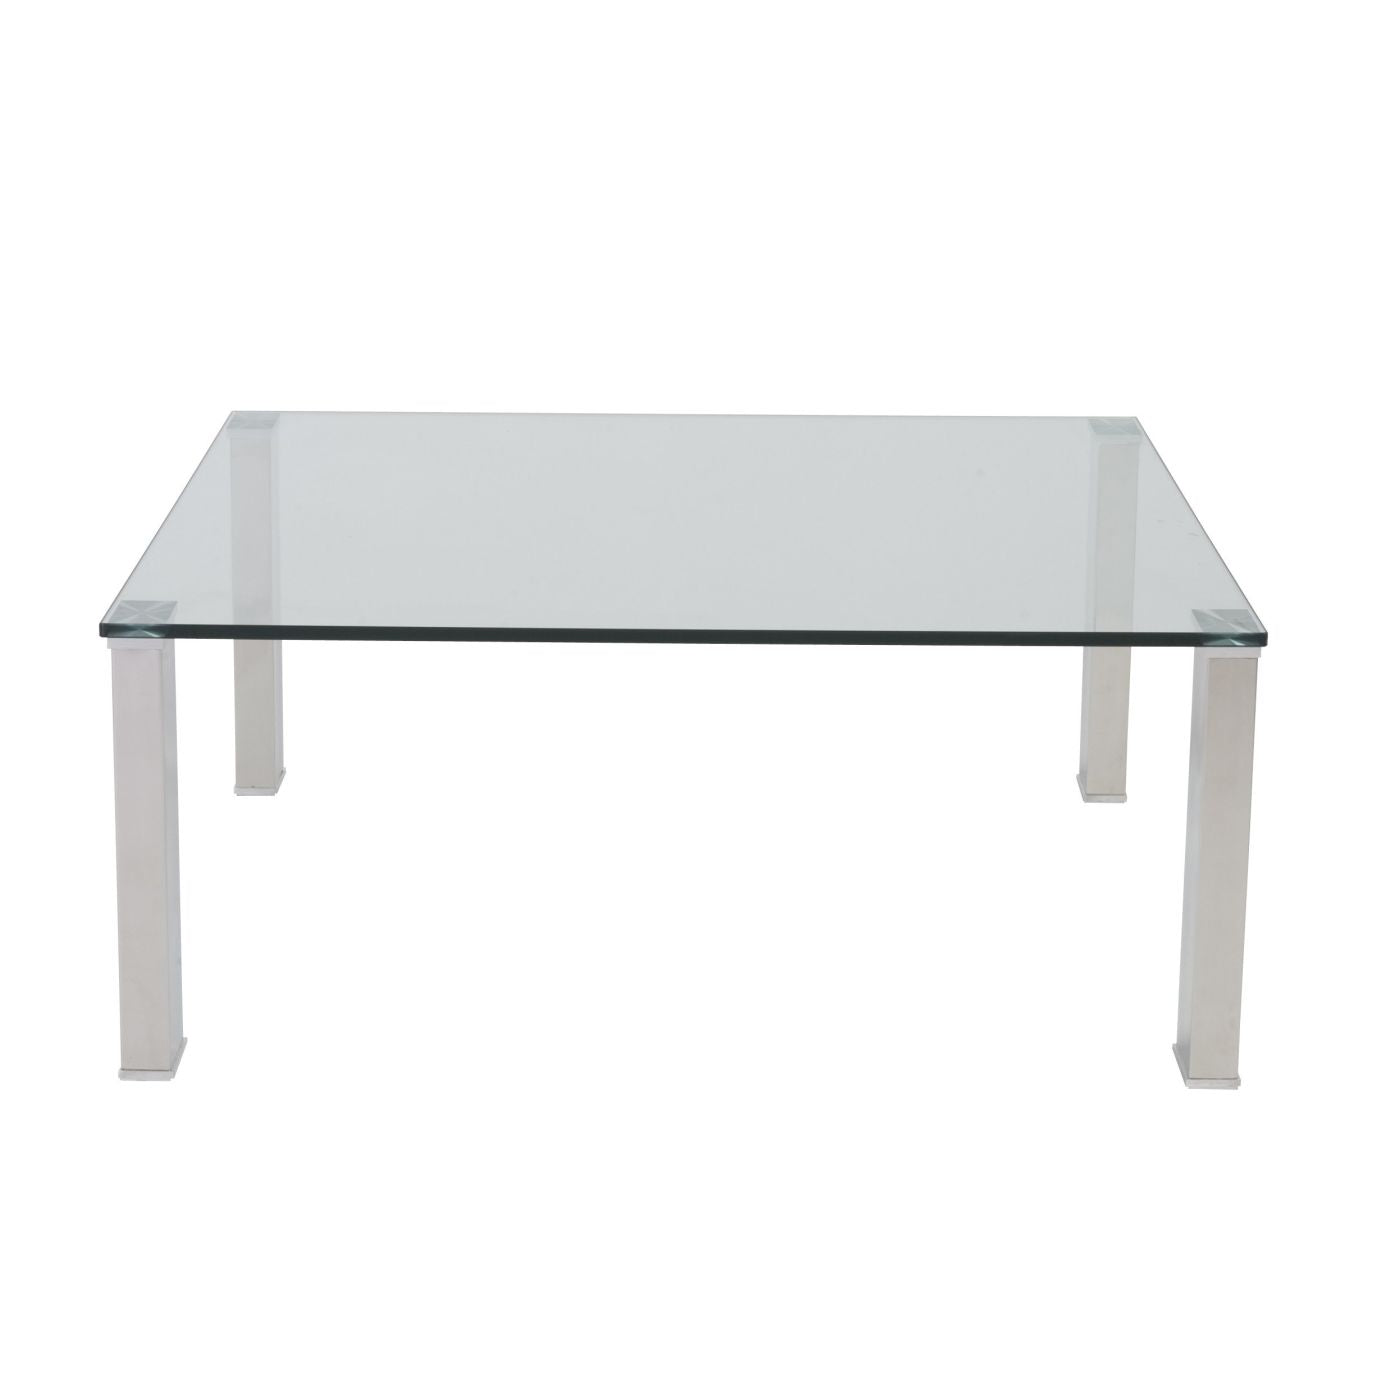 Square Coffee Table Tempered Glass: Buy Euro Style EURO-38702-KIT Beth Square Coffee Table